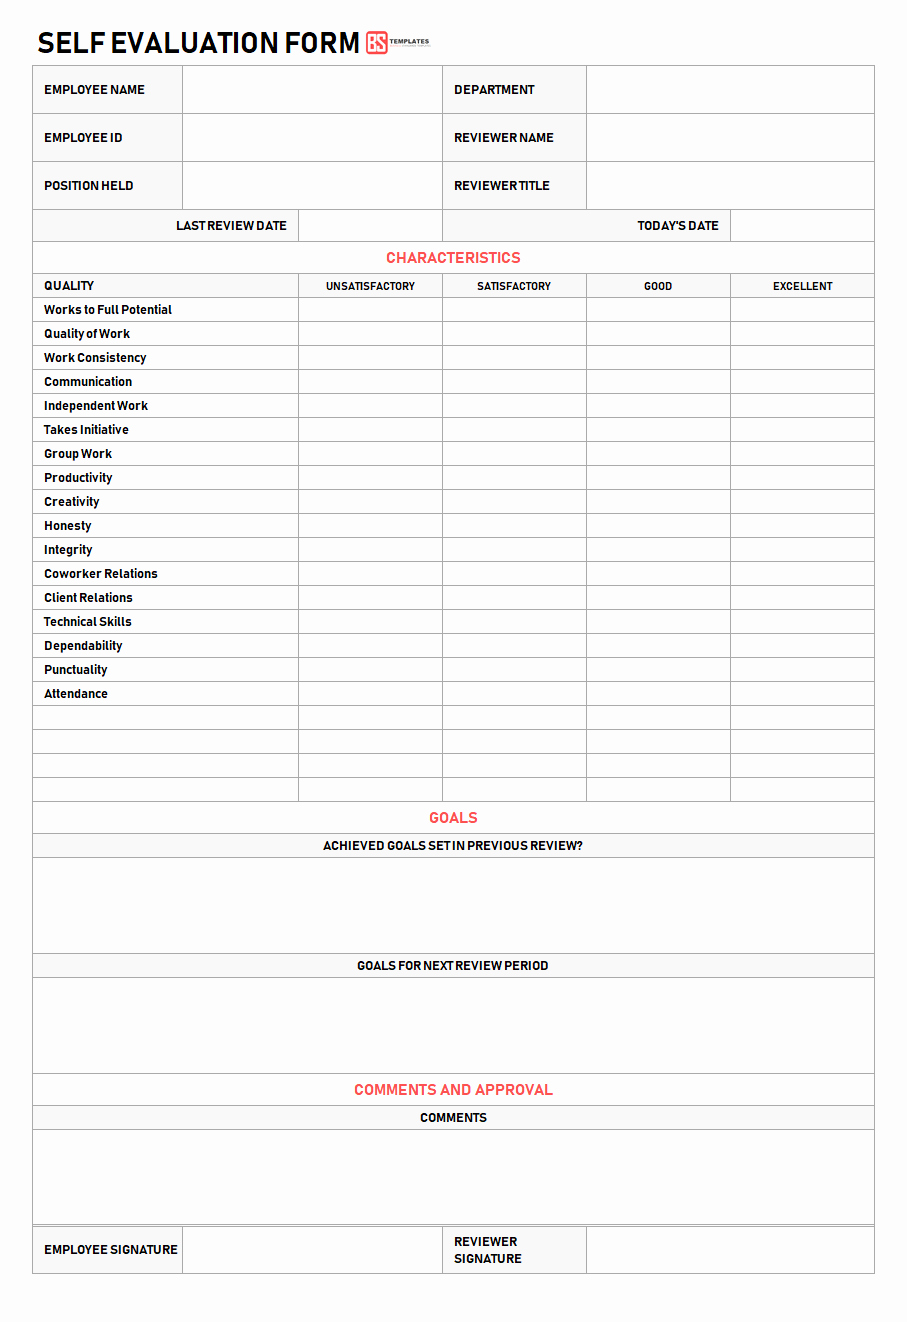 Employee Self Evaluation Template Elegant Self Evaluation Examples Samples & forms Quick Questions